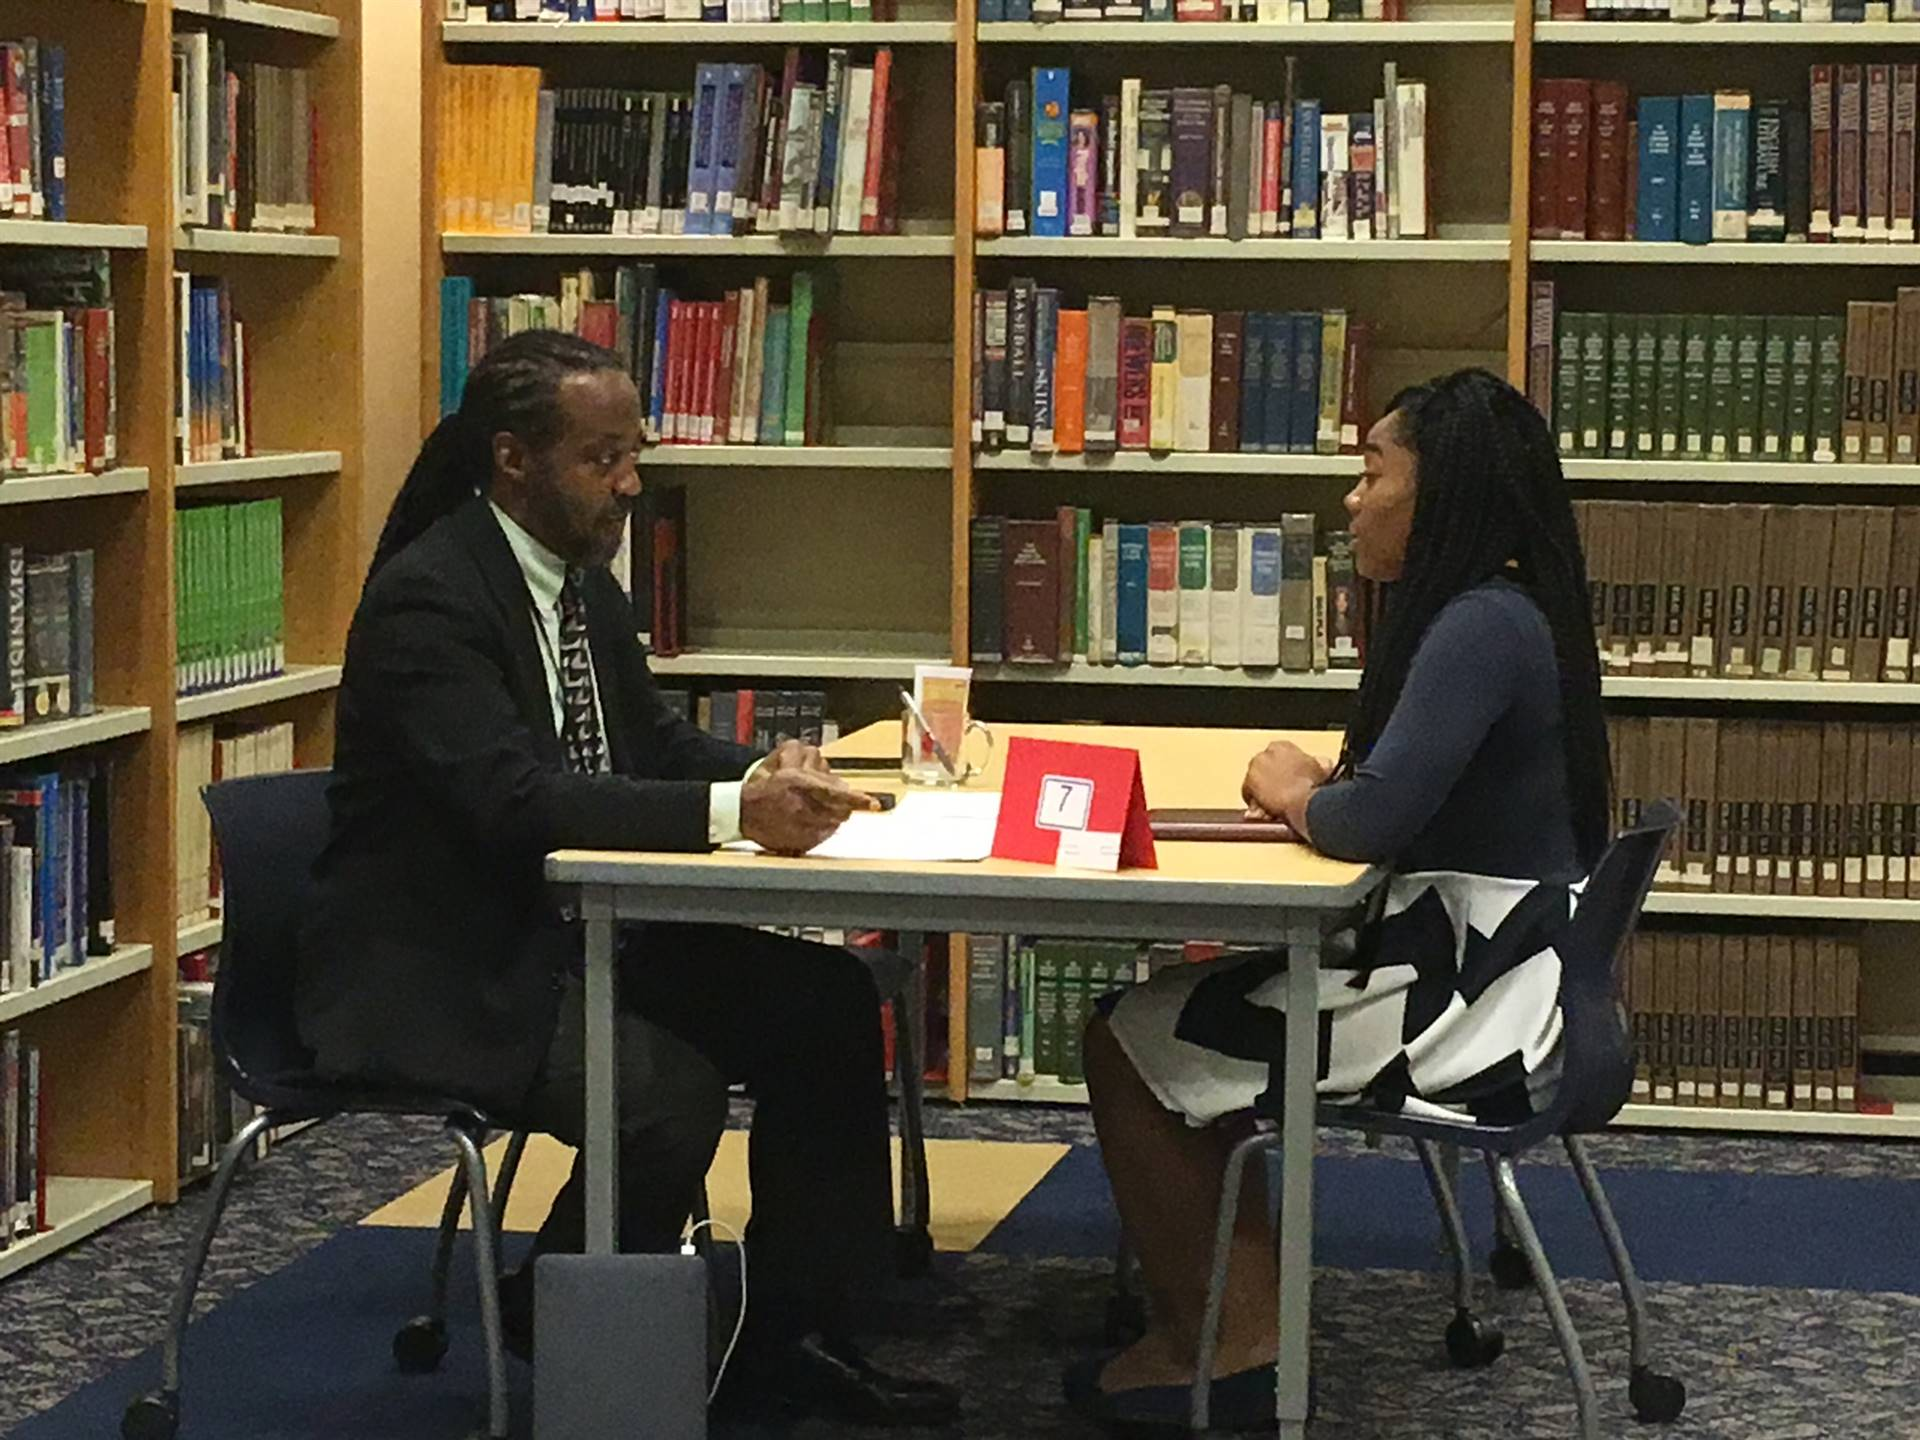 a female student being interviewed by a businessman